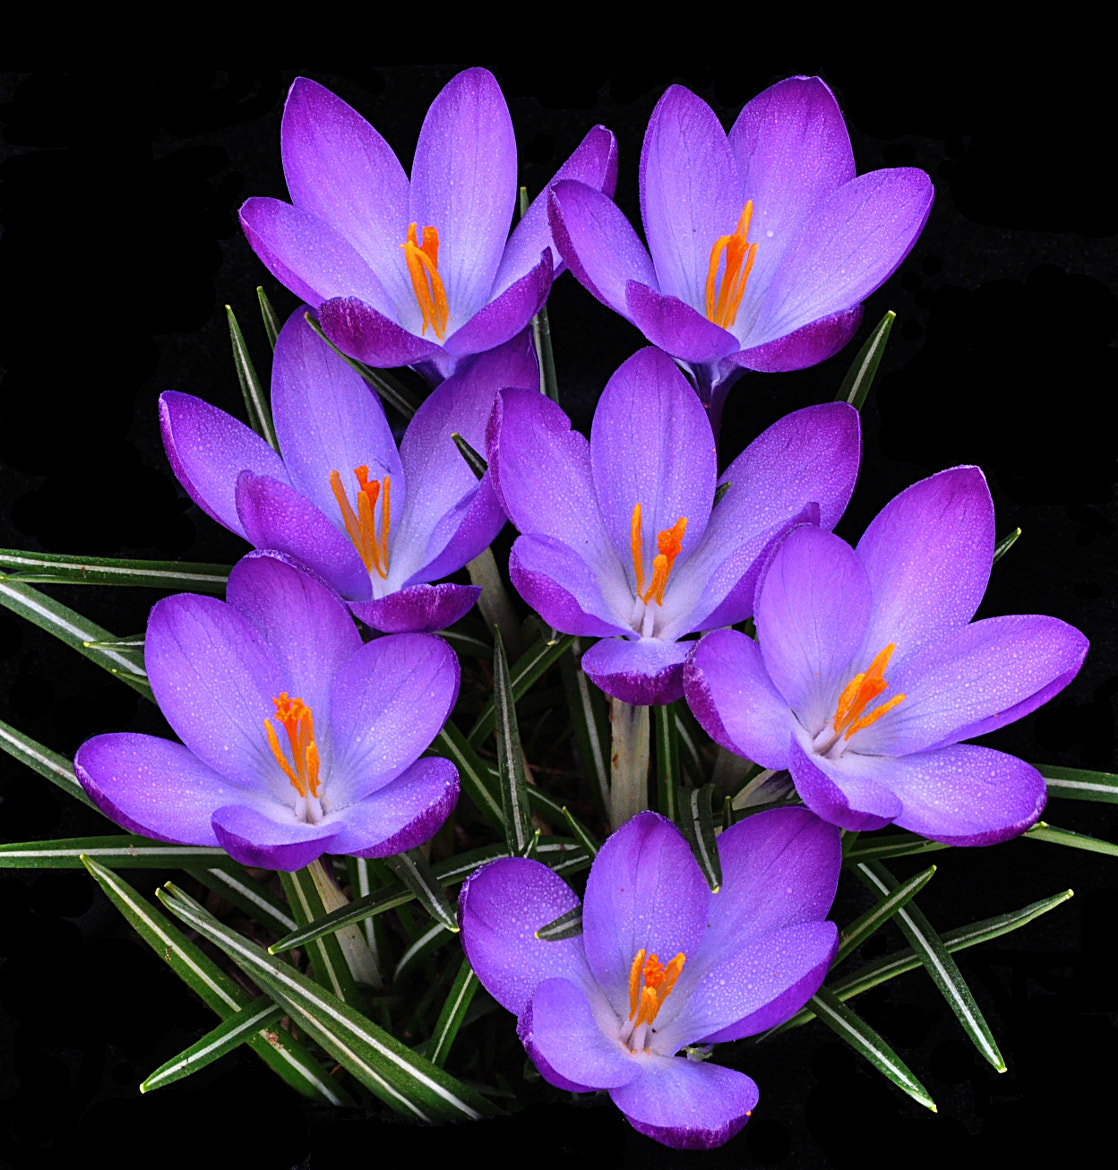 Photograph Crocuses by John Leigh on 500px